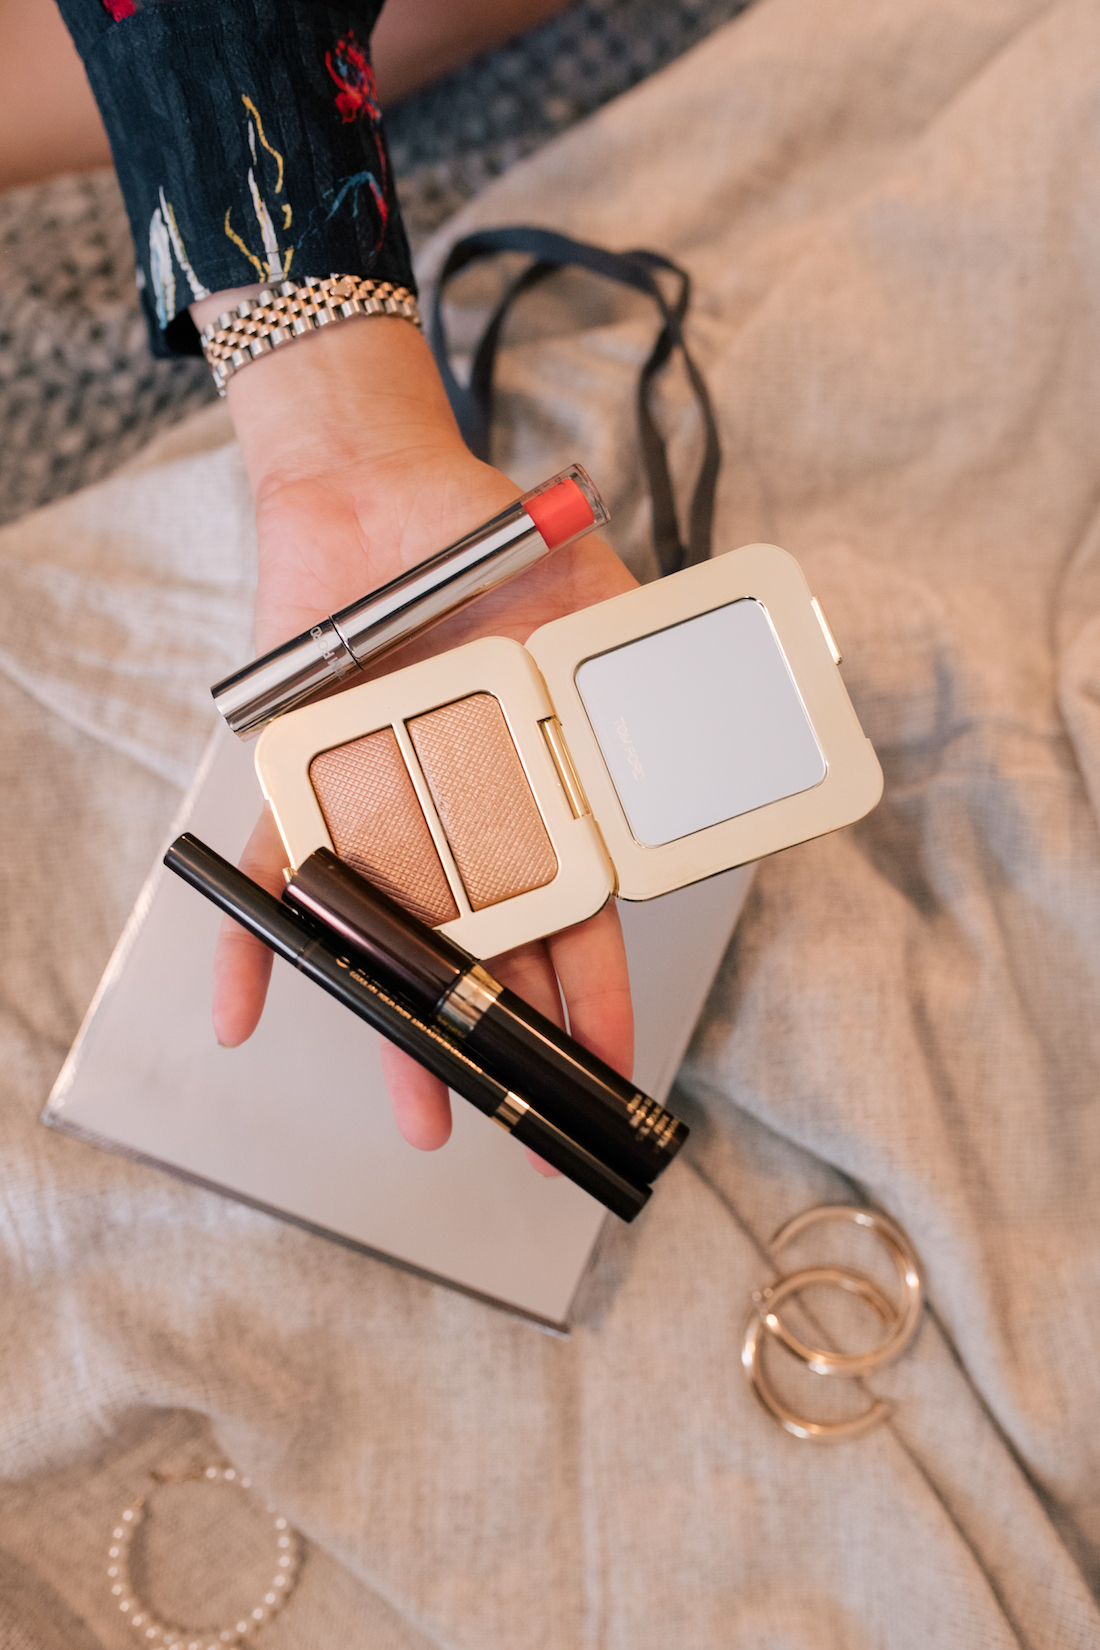 Tom Ford beauty products and lip colors